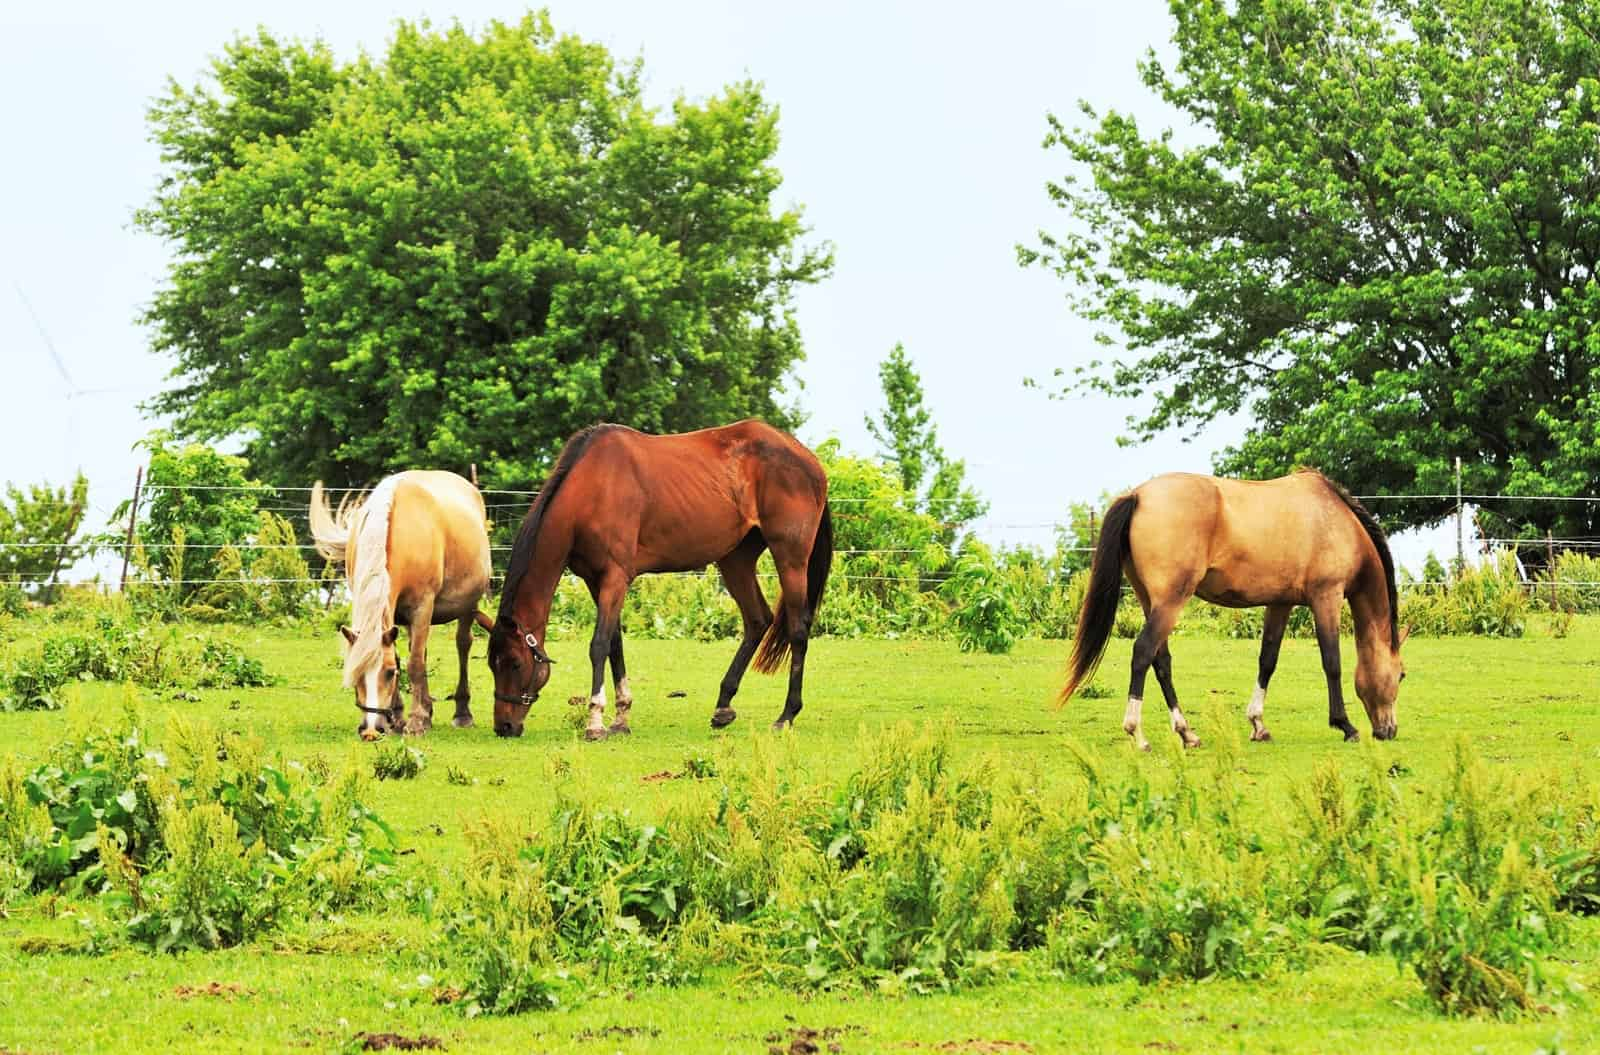 Weed Management for Small Horse Properties